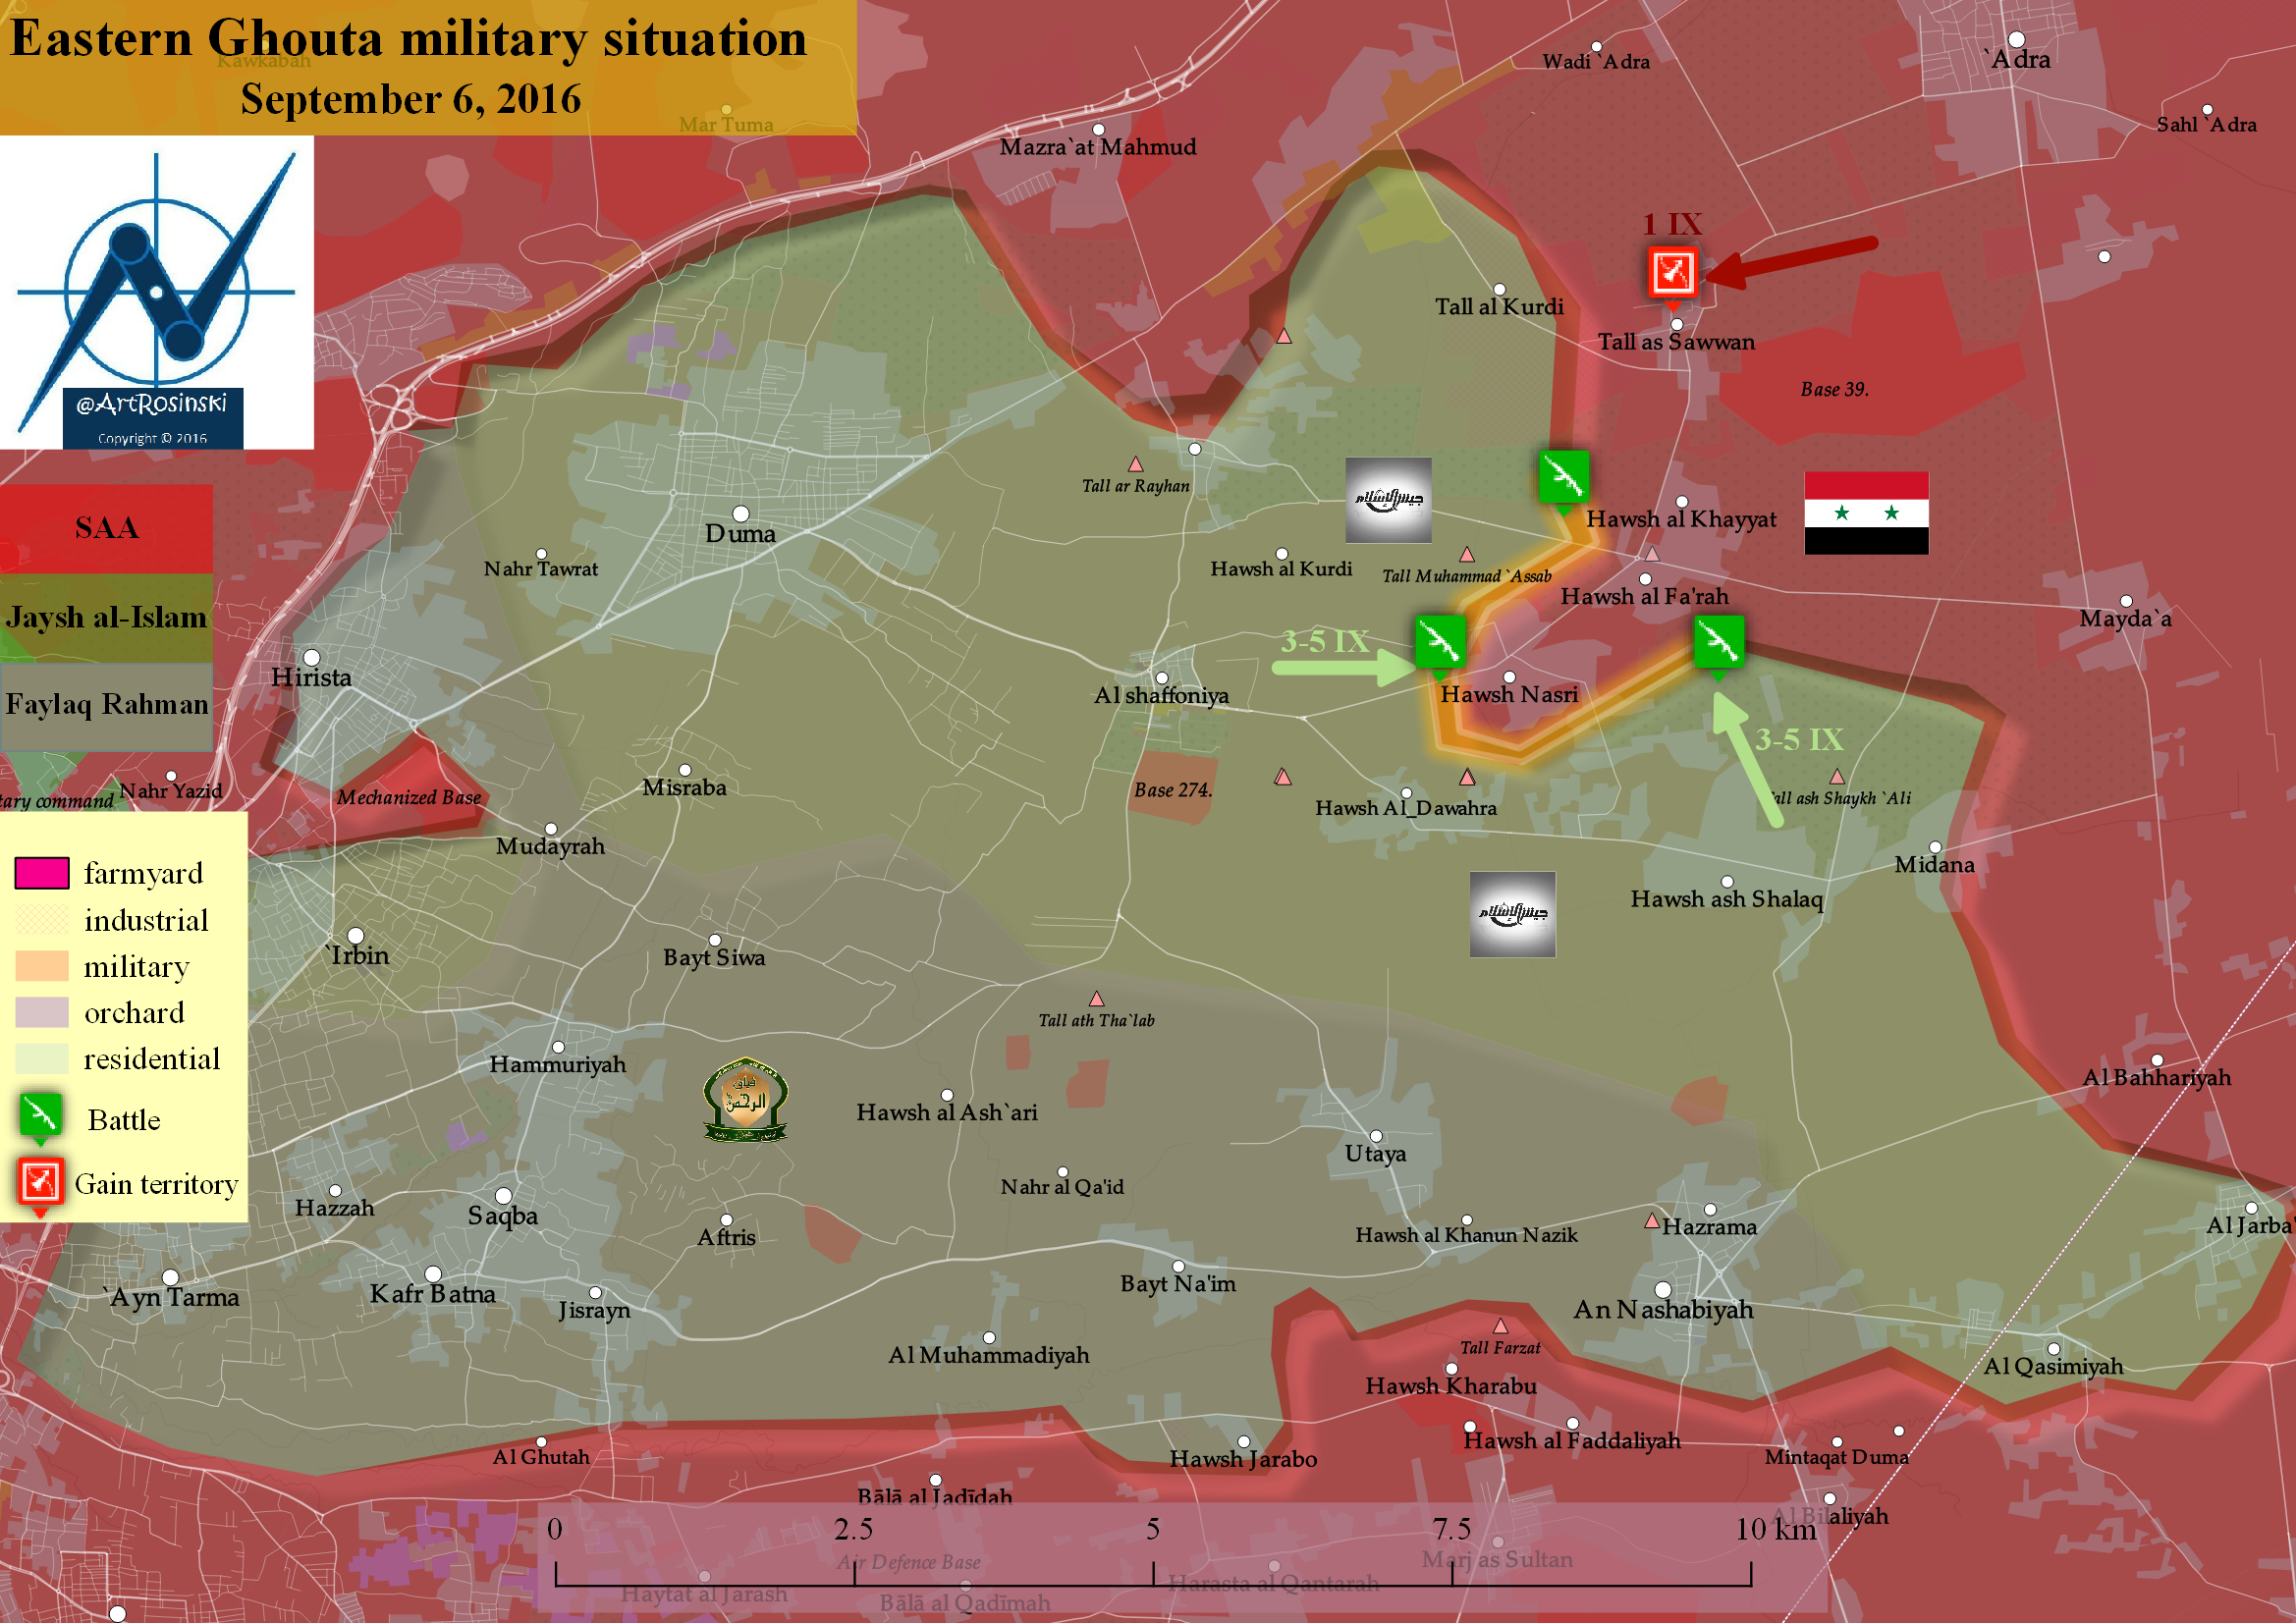 Eastern Ghouta military situation (6 VIII 2016)